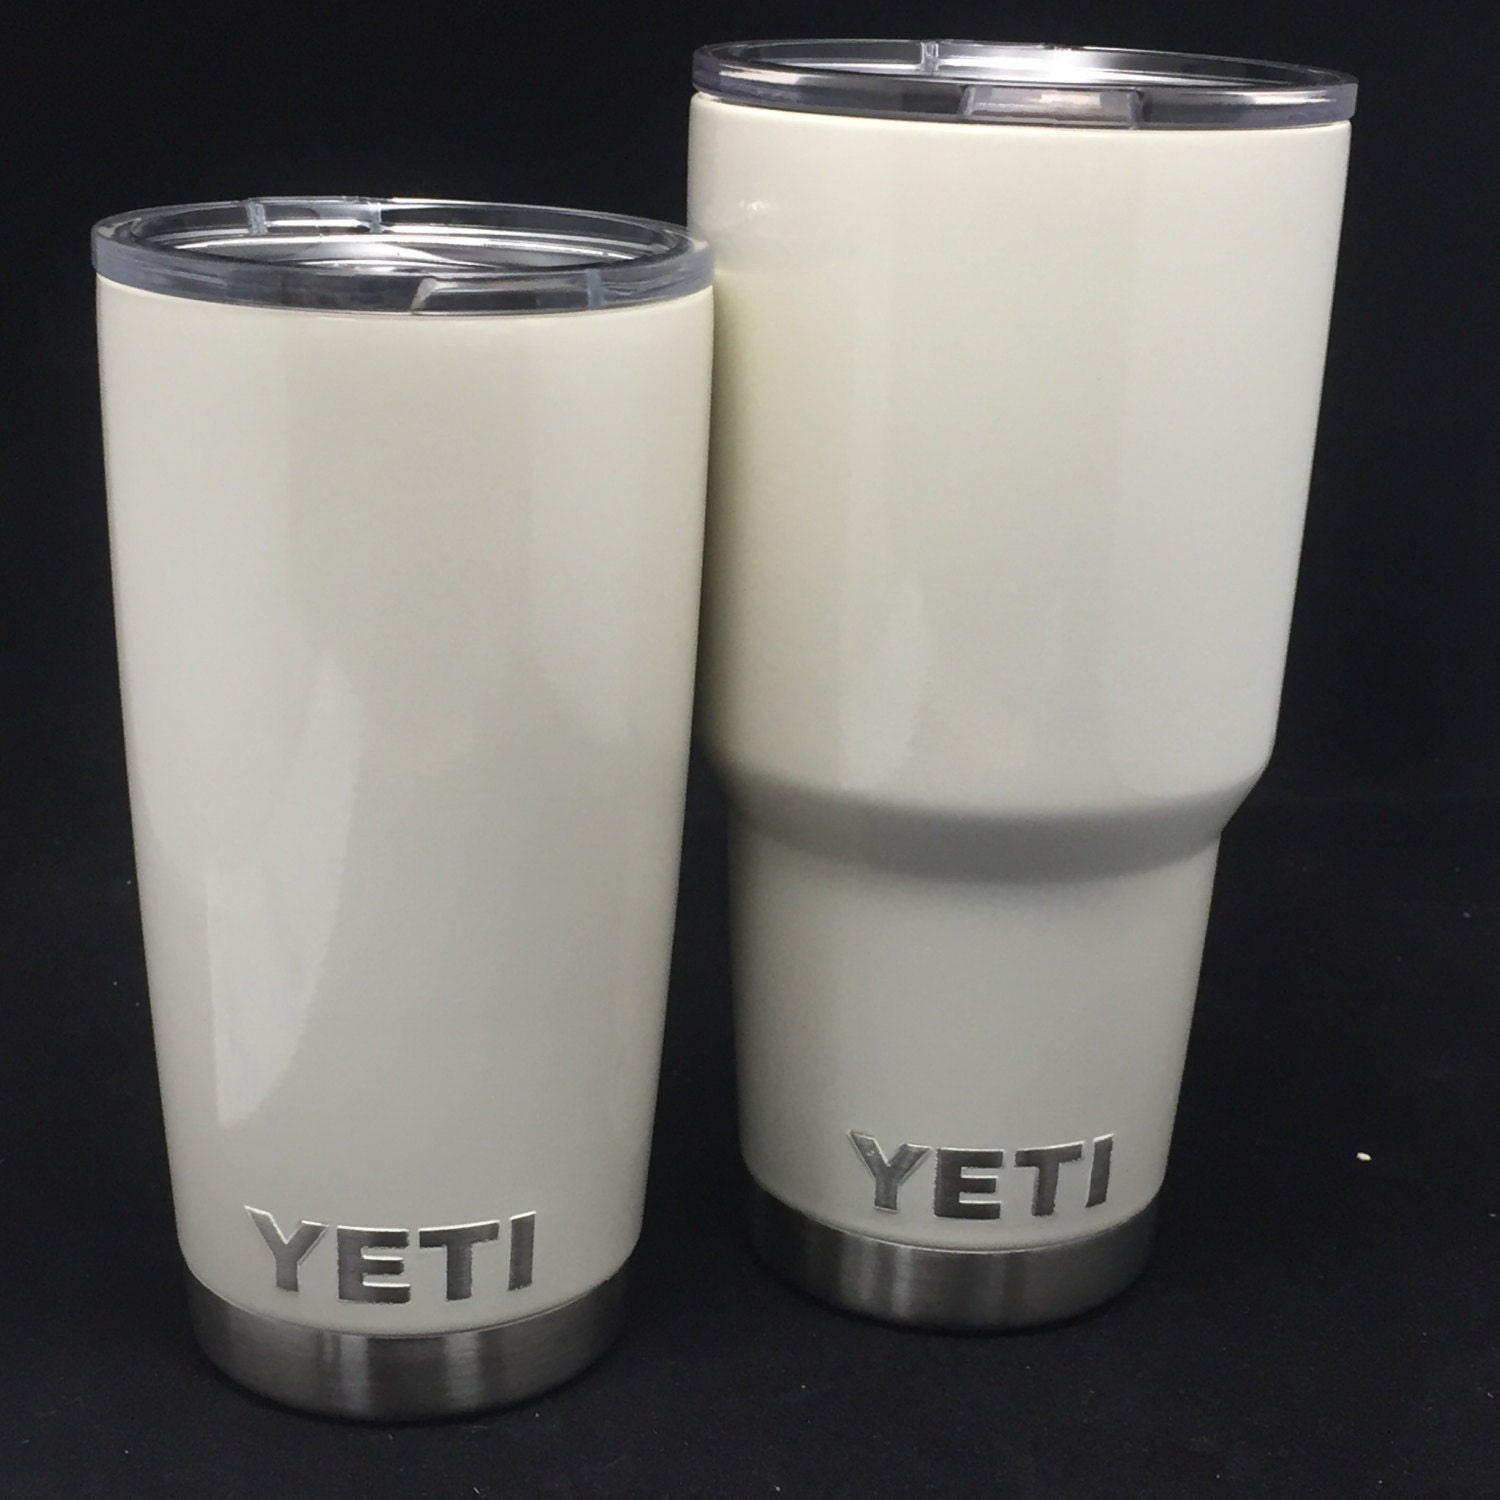 Yeti Cup Prices >> Antique White Powder Coated Yeti Rambler Tumbler Colster or